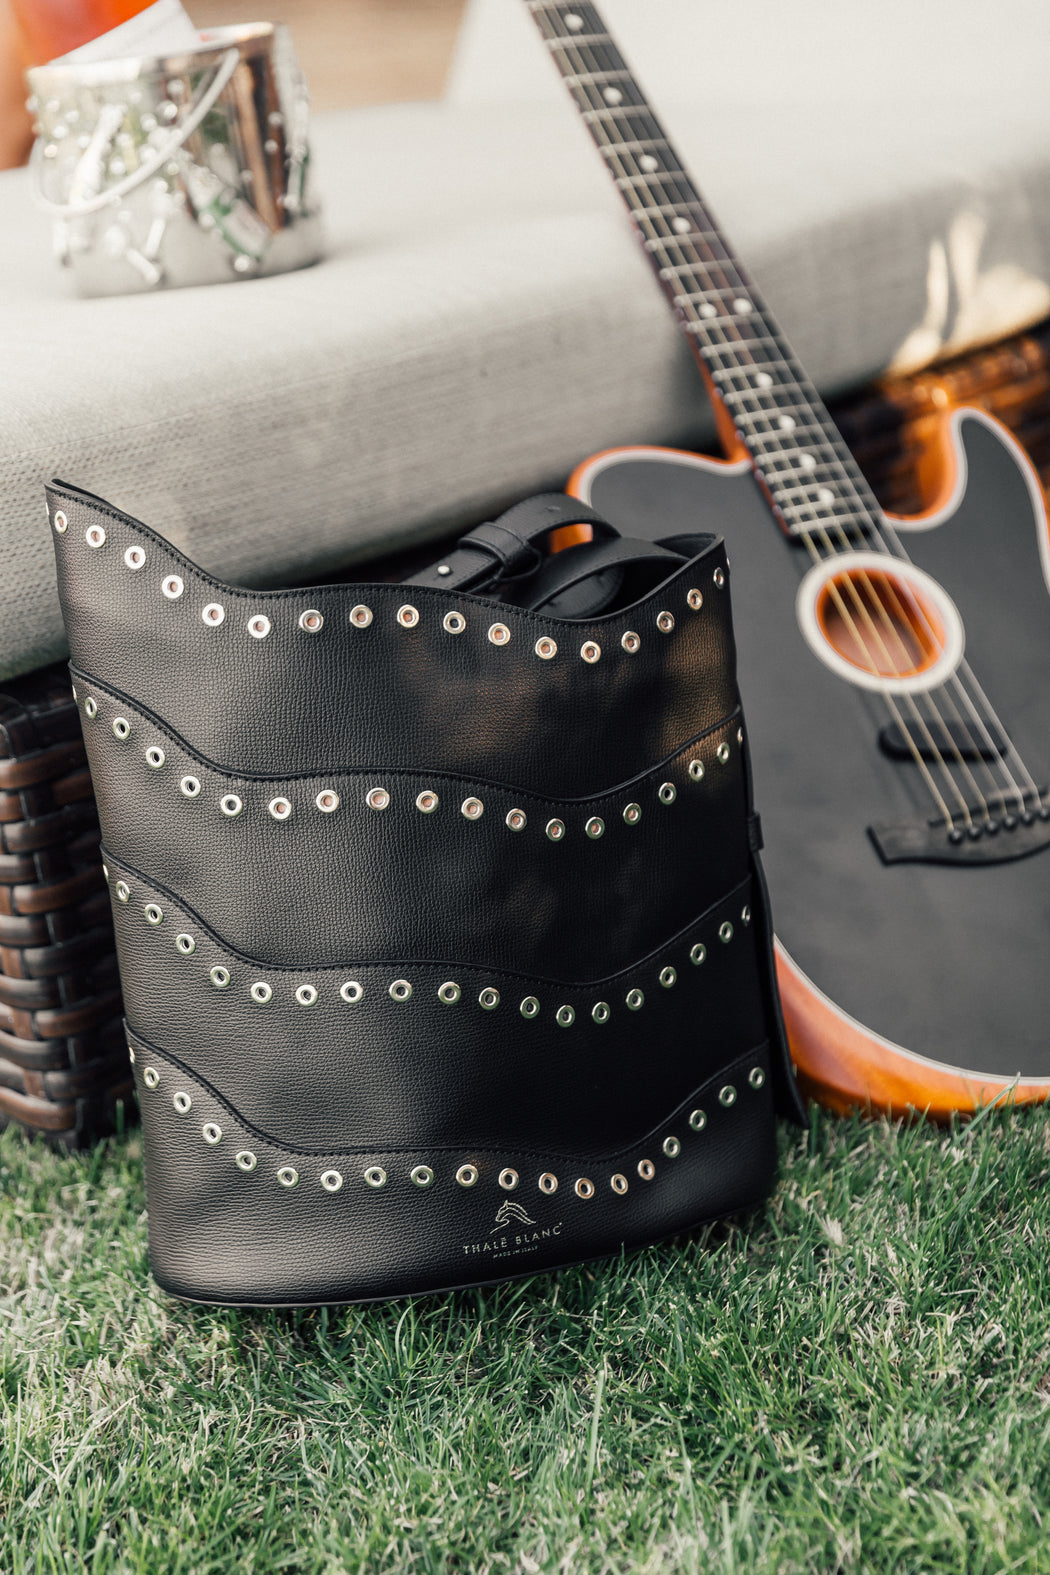 Luxury handbag: Black bucket purse on floor next to guitar